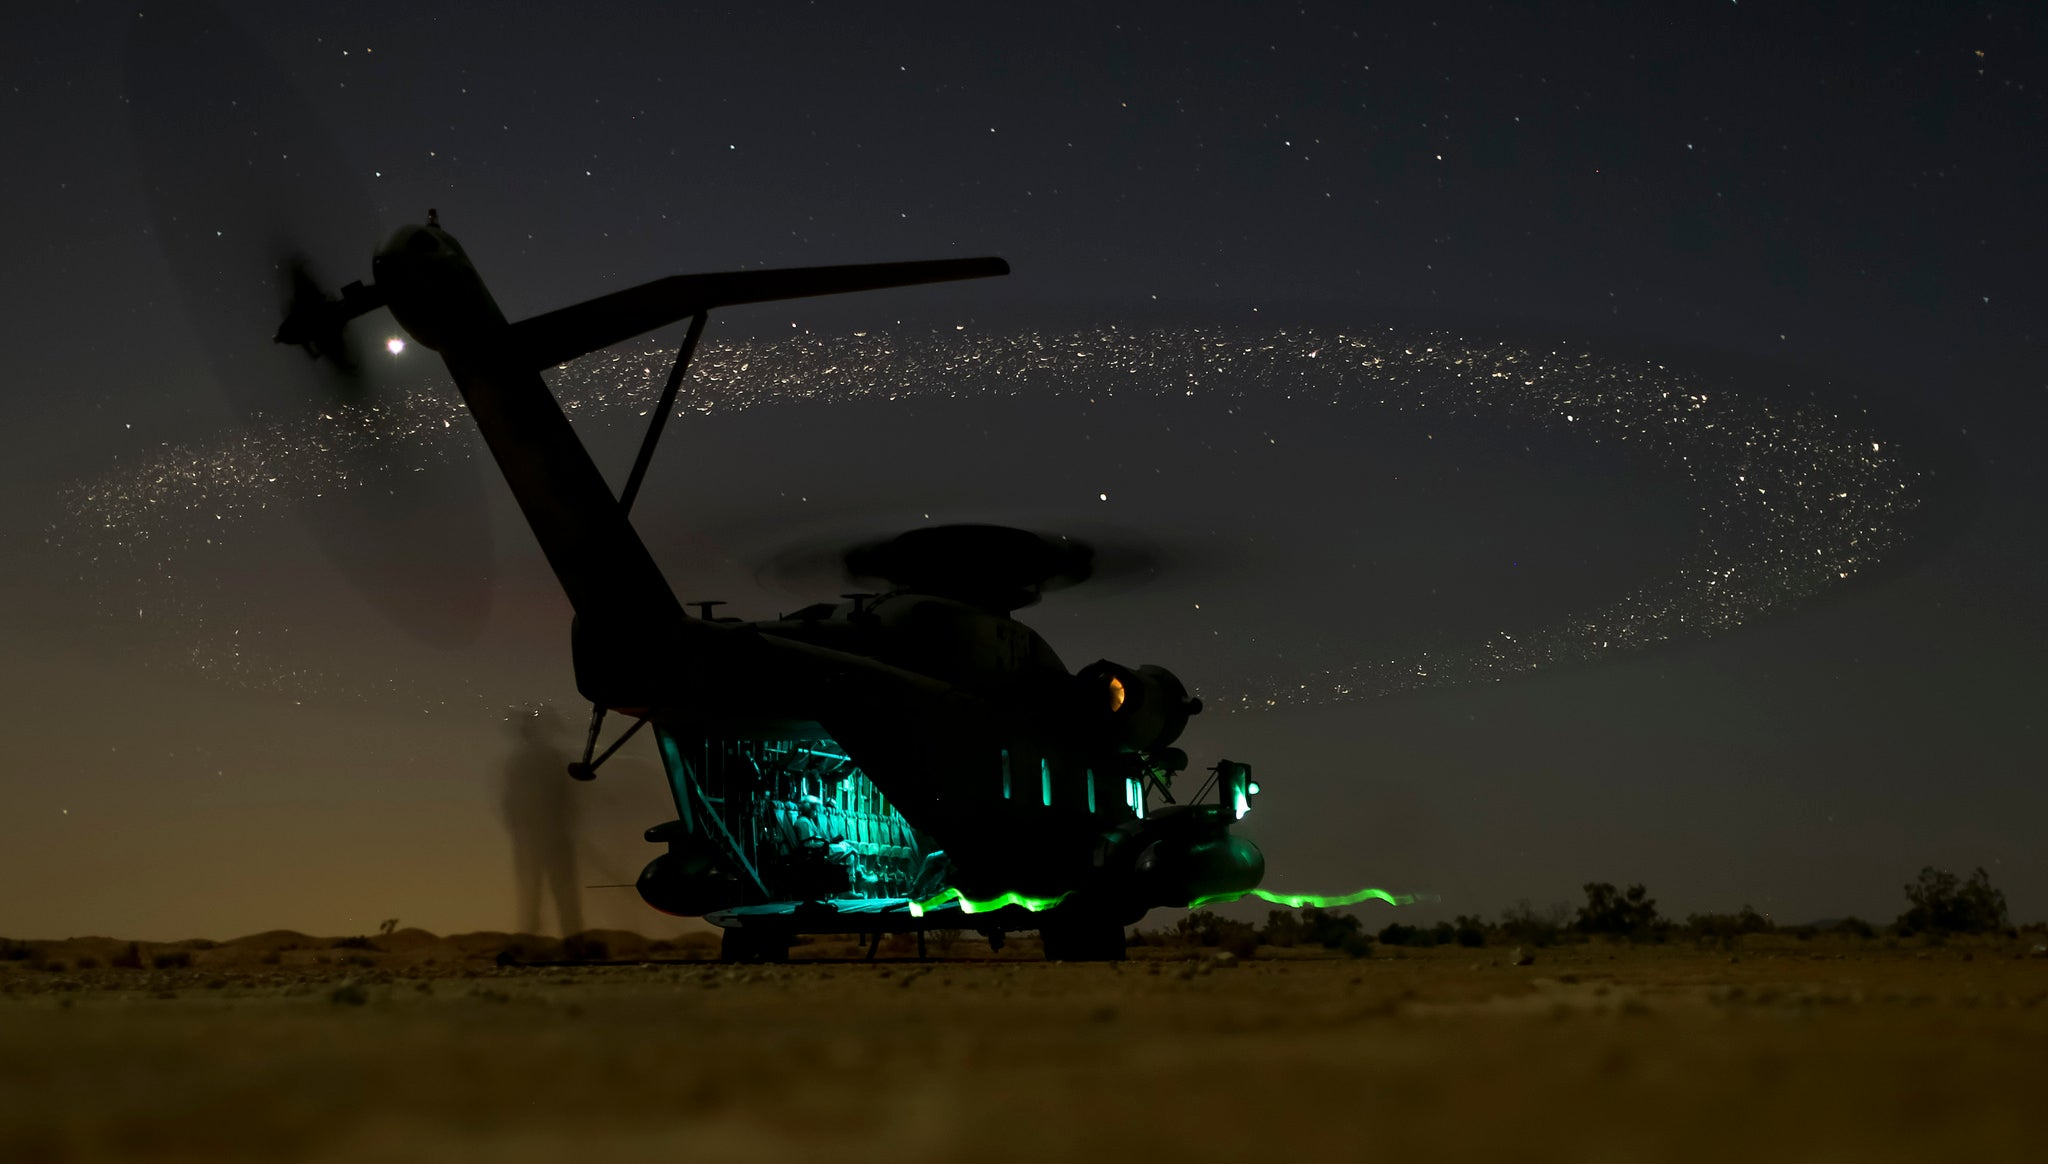 US Marines helicopter looks like its powered by the stars